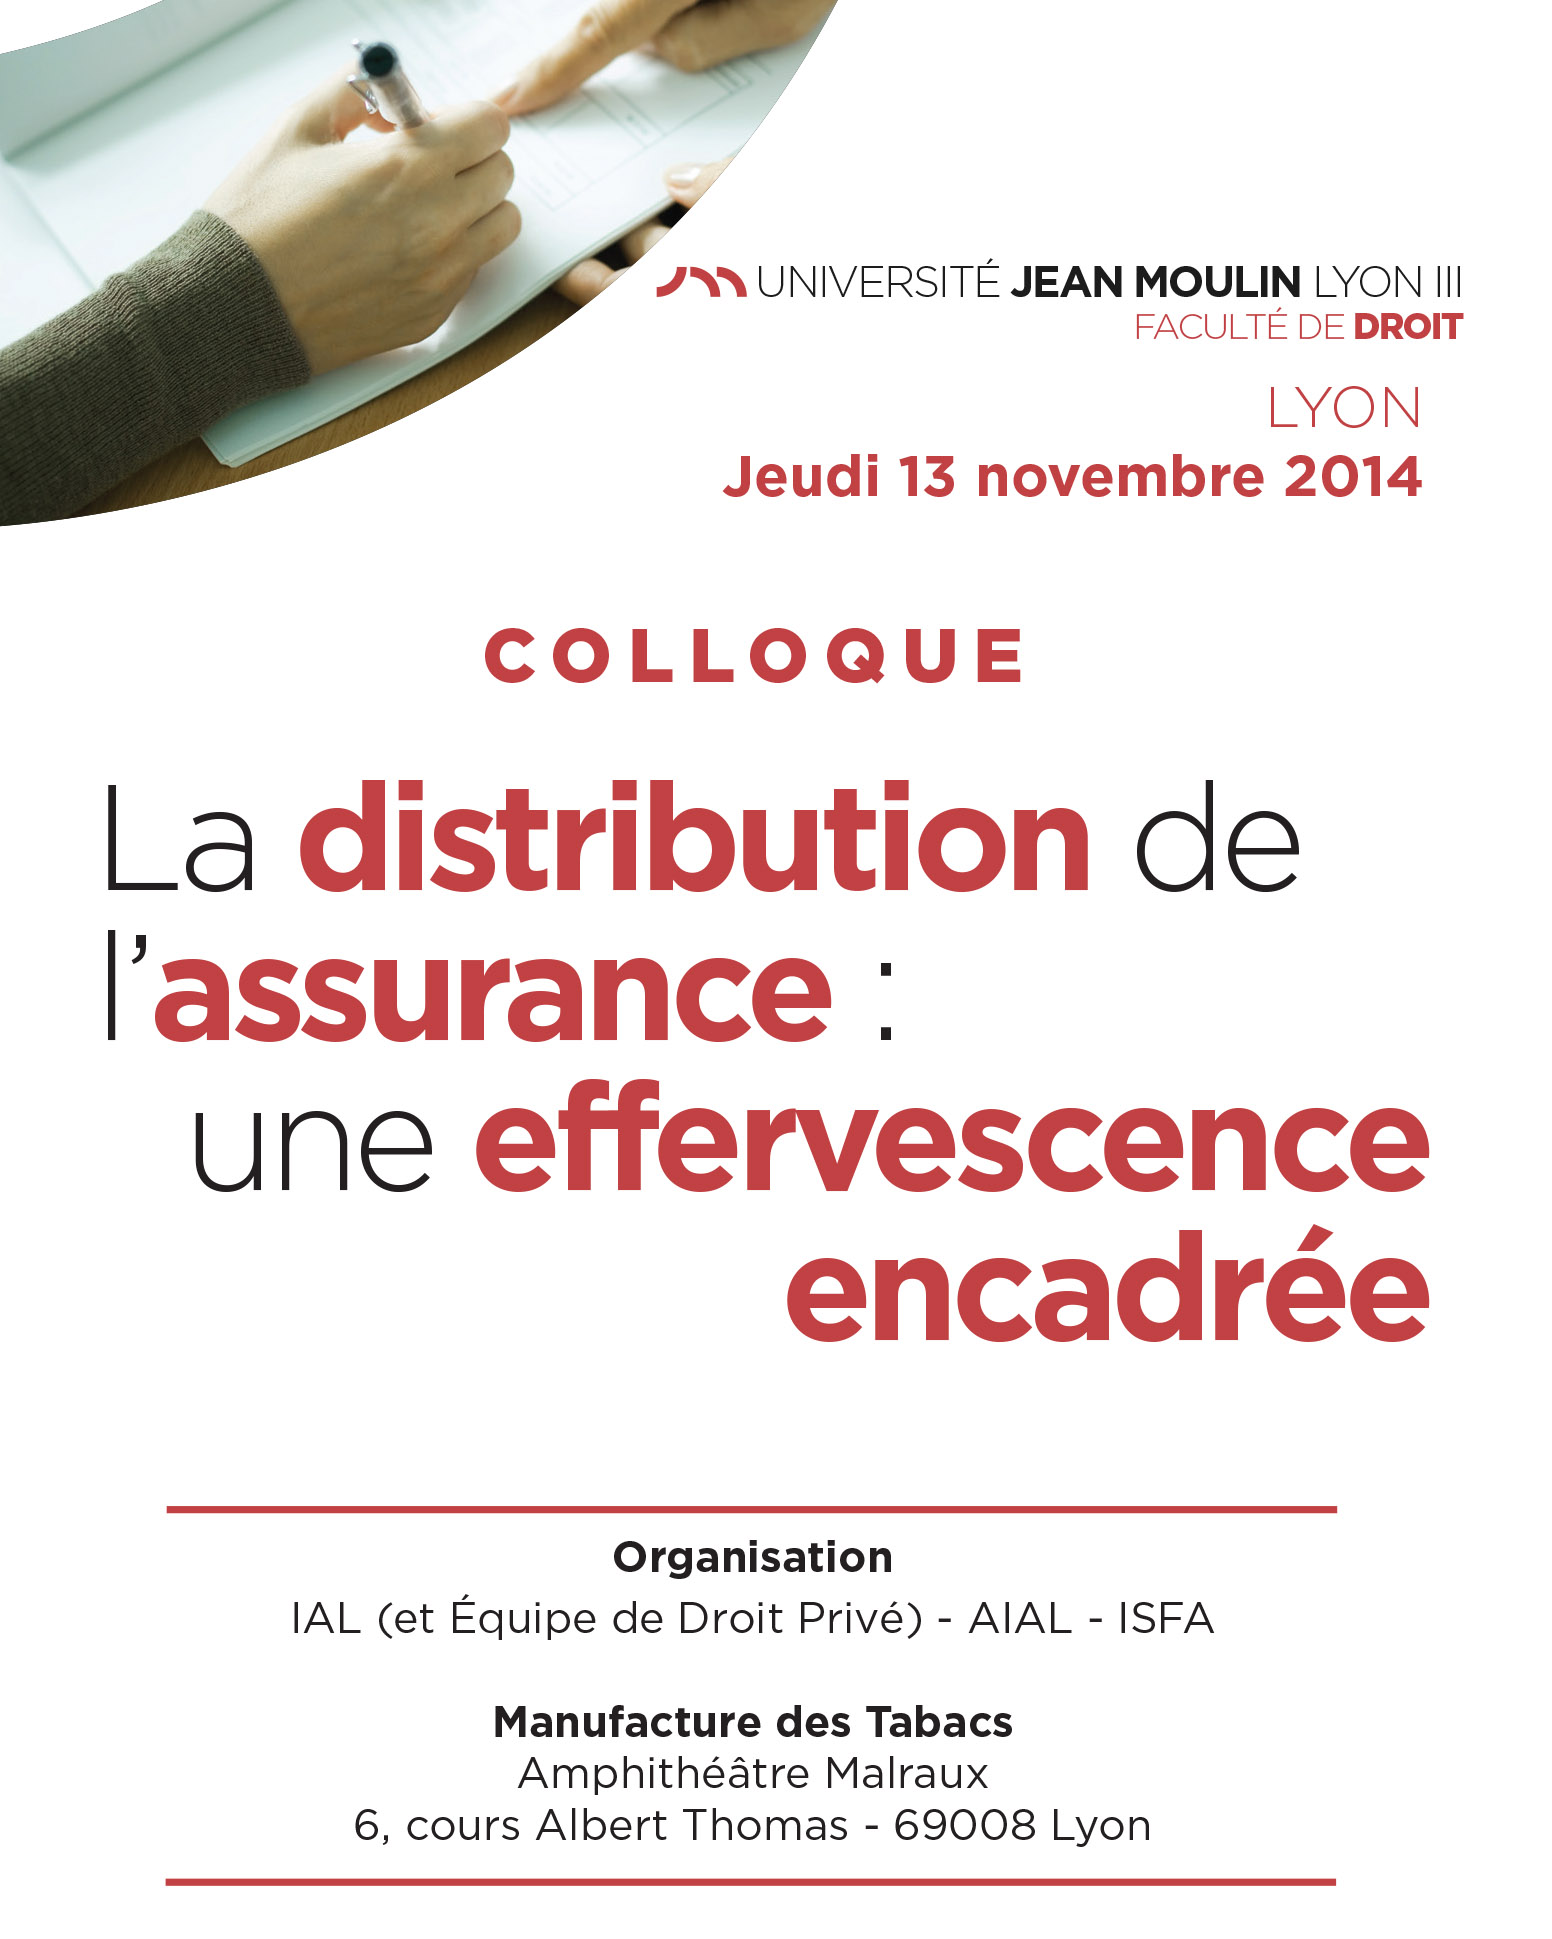 Colloque IAL : La distribution de l'assurance